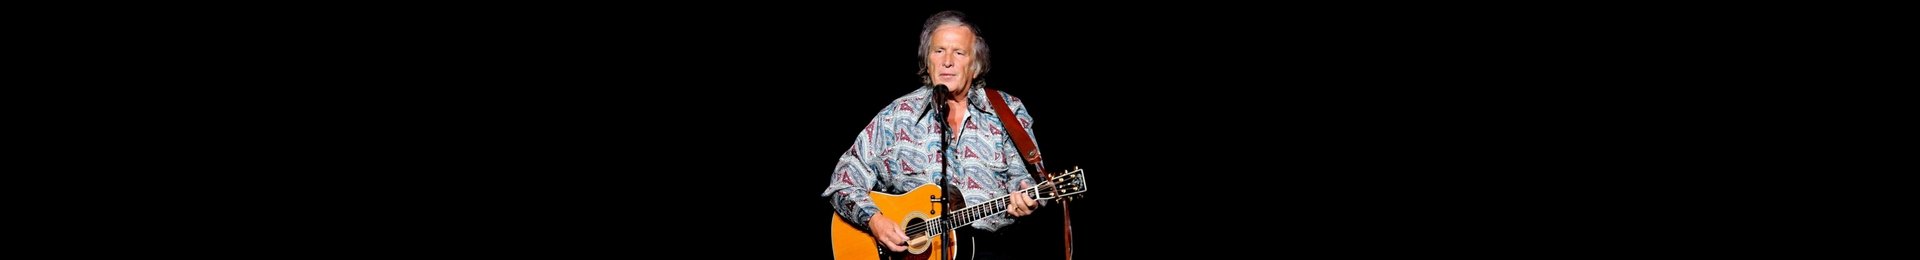 Don McLean concert tickets